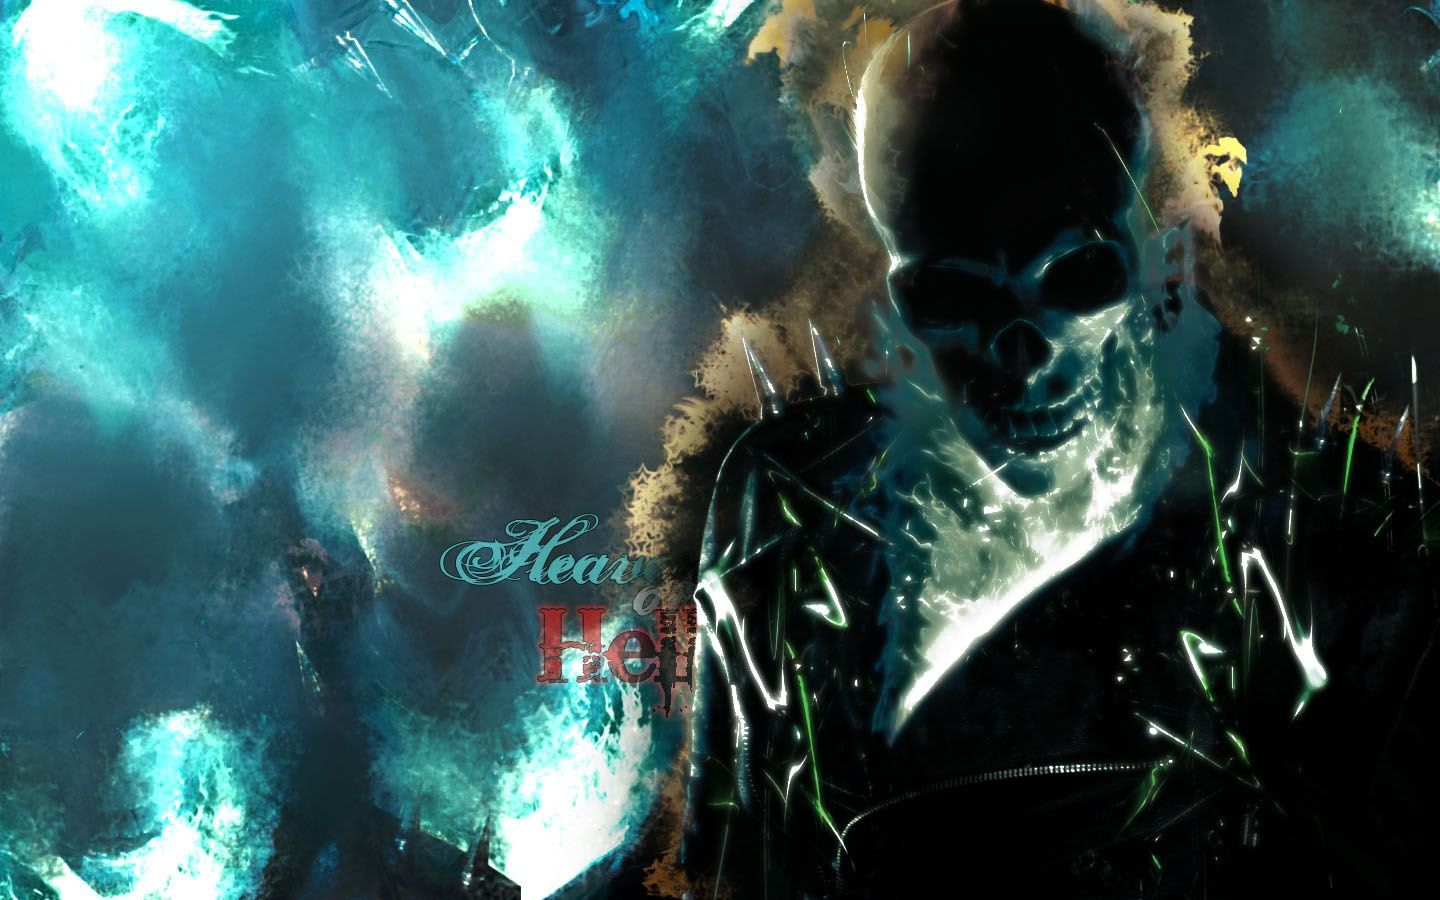 blue ghost rider wallpaper - wallpapersafari | beautiful wallpapers